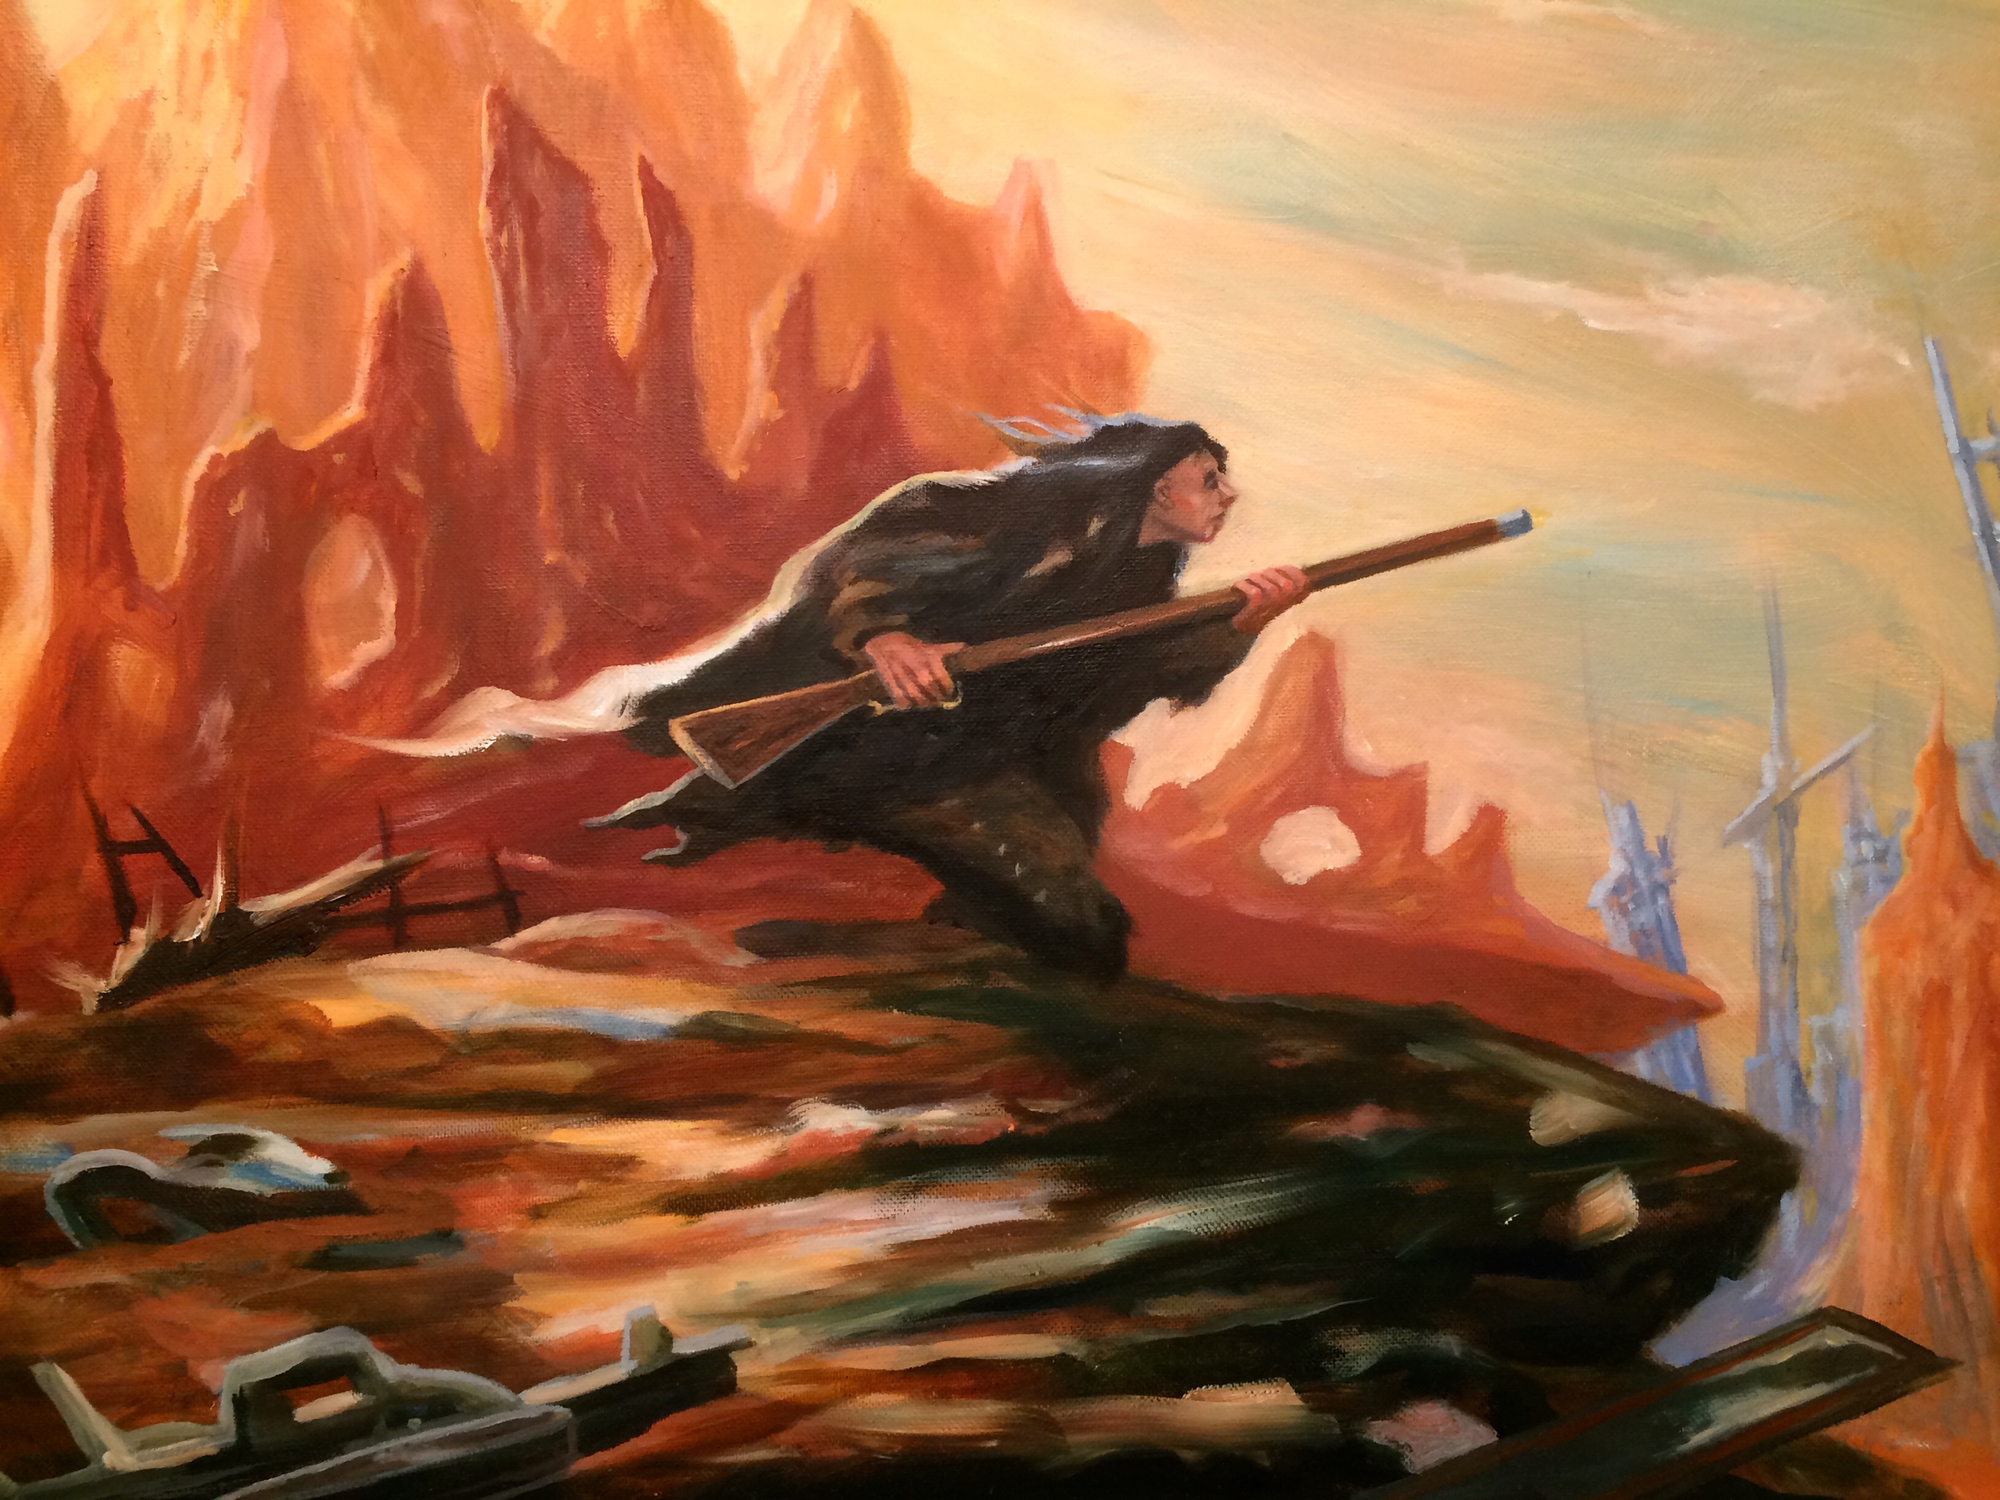 The Last of the Mohicans Artwork by Brian McElligott